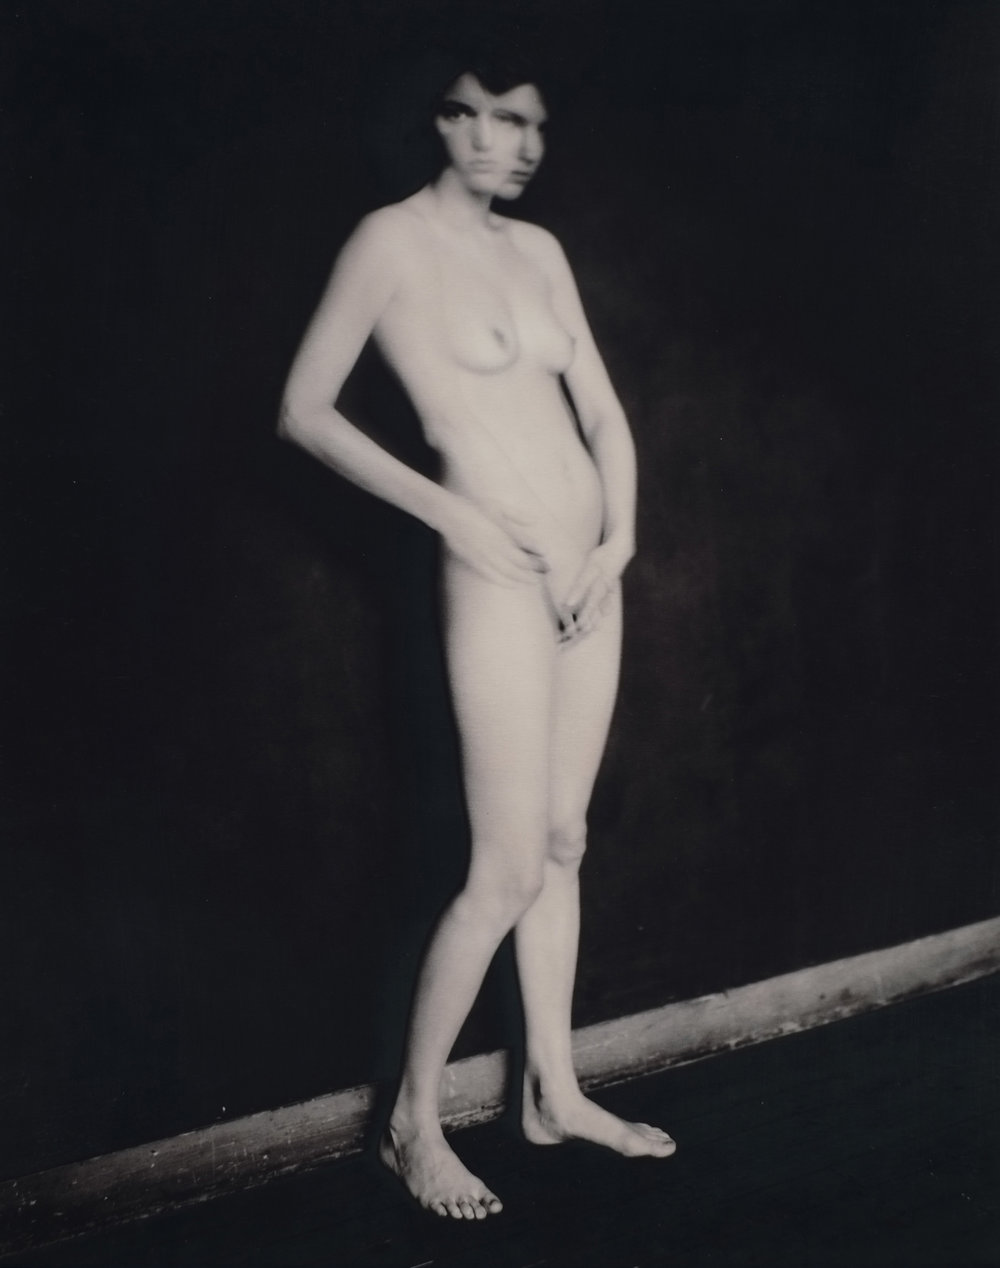 """""""Ben, Paris"""" 2004. Pigment print on baryta paper. Image, 9 1/2 x 7 1/2 inches. Paper, 10 3/4 x 8 3/8 inches. ©Paolo Roversi. Courtesy of Pace/MacGill Gallery, New York"""